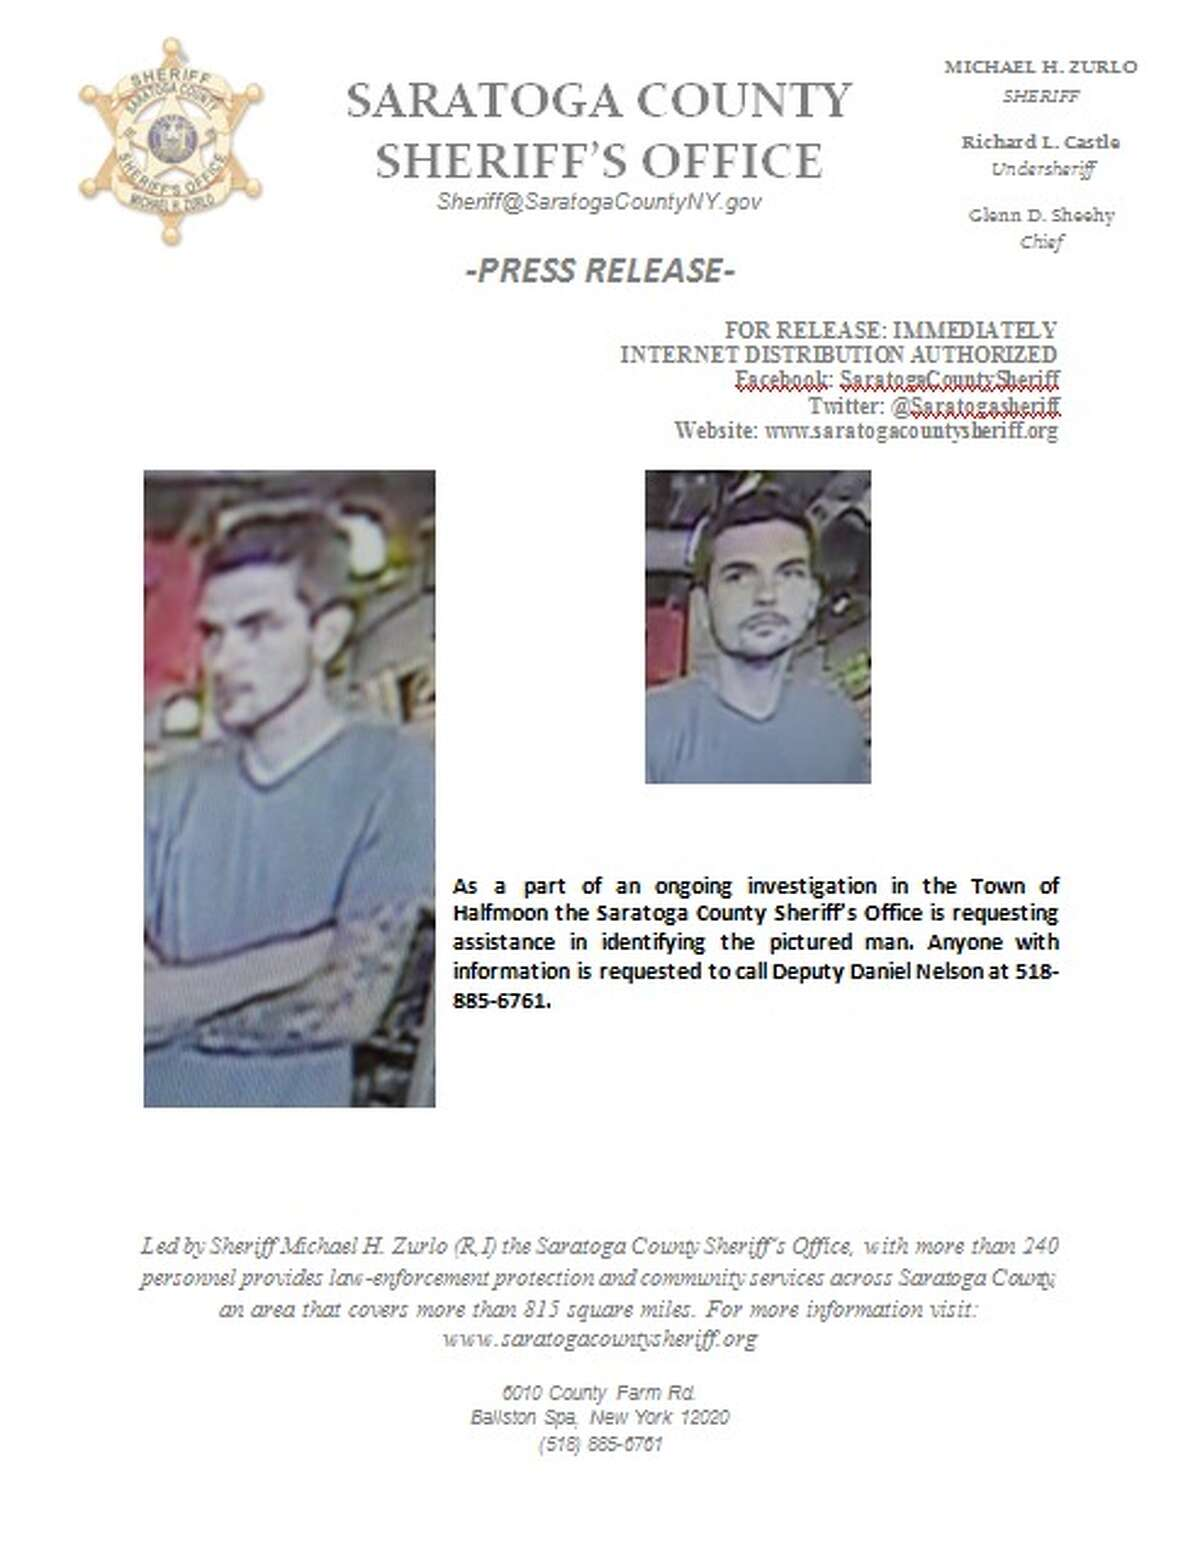 The Saratoga County Sheriff's Office seeks help identifying the man in the photos.